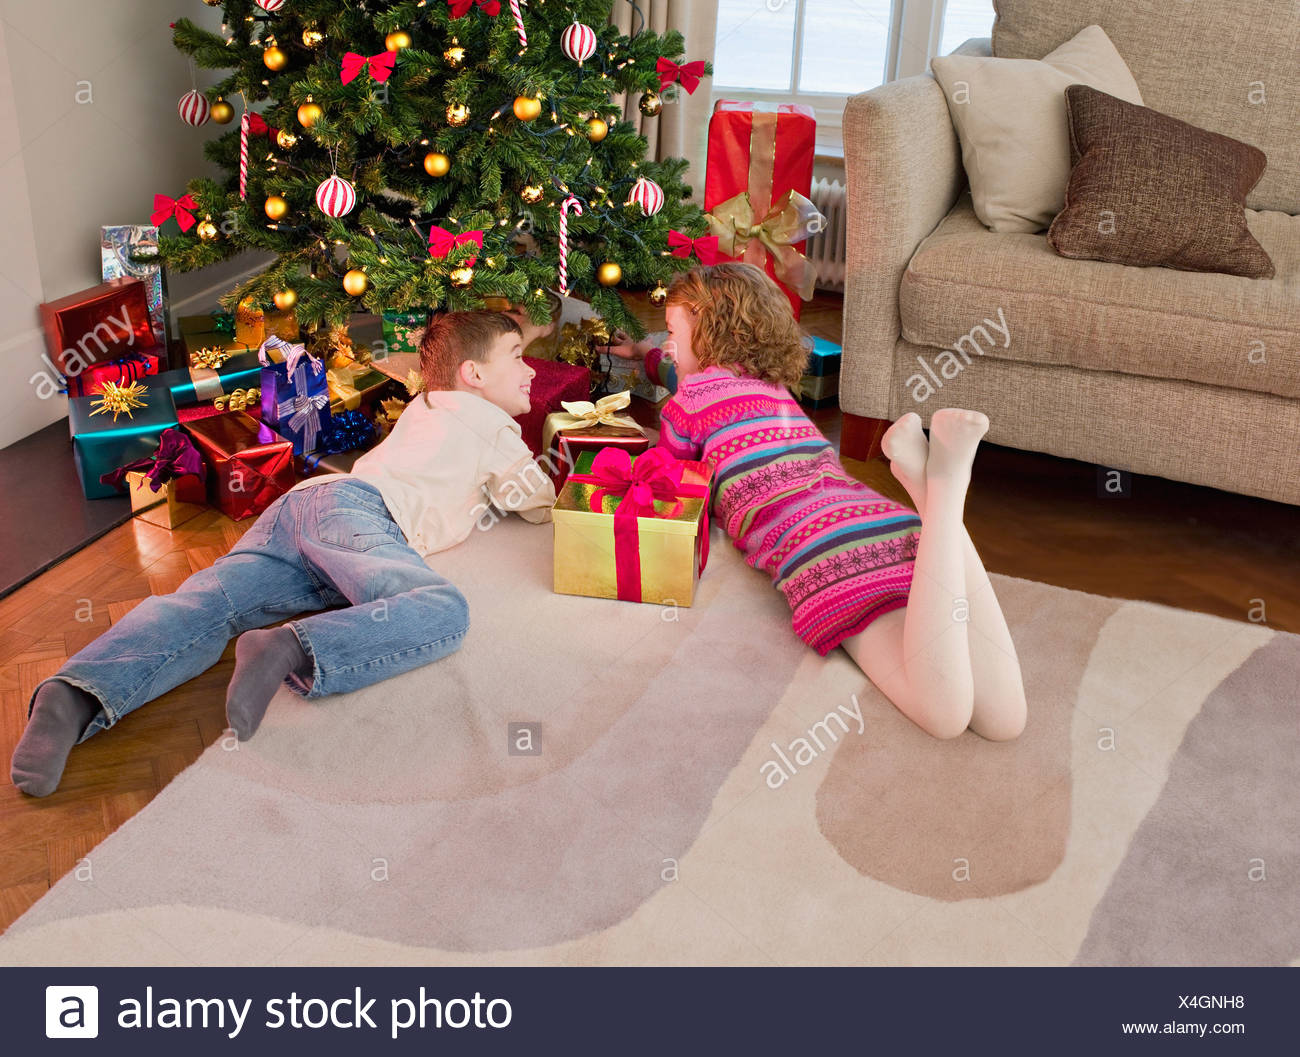 Boy and girl looking at gifts under Christmas tree - Stock Image